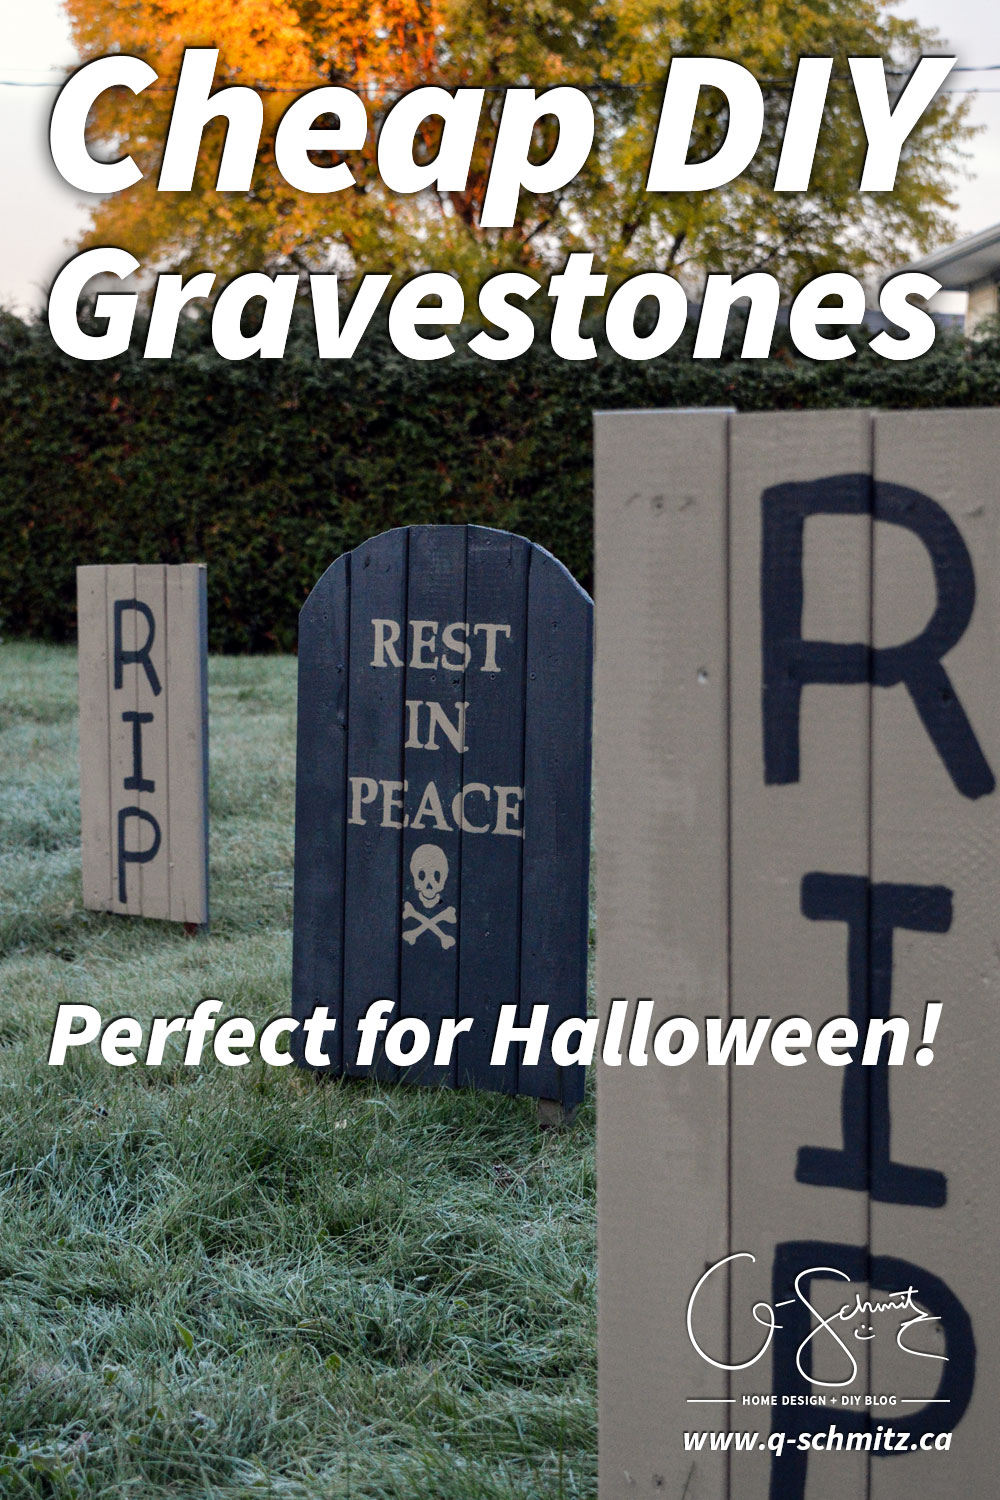 Here is my handy tutorial on how to make easy, cheap DIY gravestones that are perfect for Halloween! Would you believe me if I told you I made these for free?